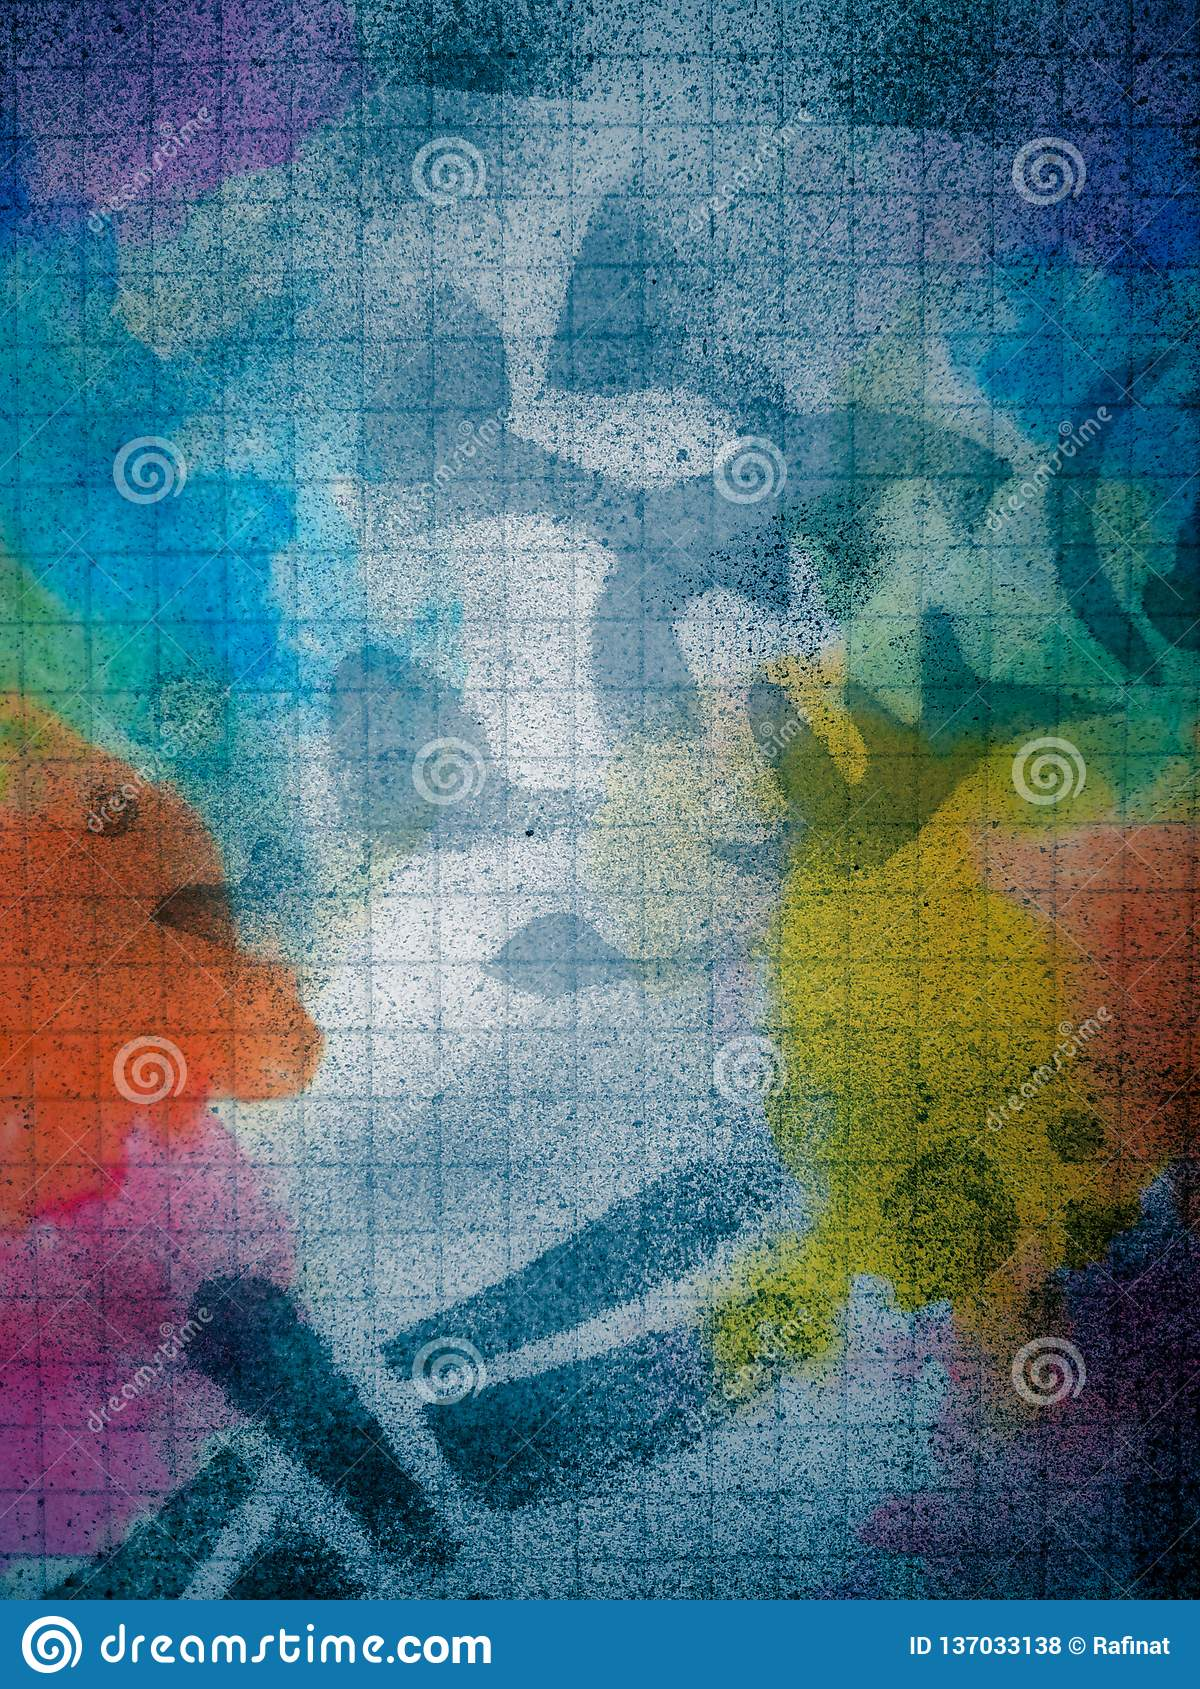 Abstract Spray Multicolor Painting Stock Photo - Image of ...